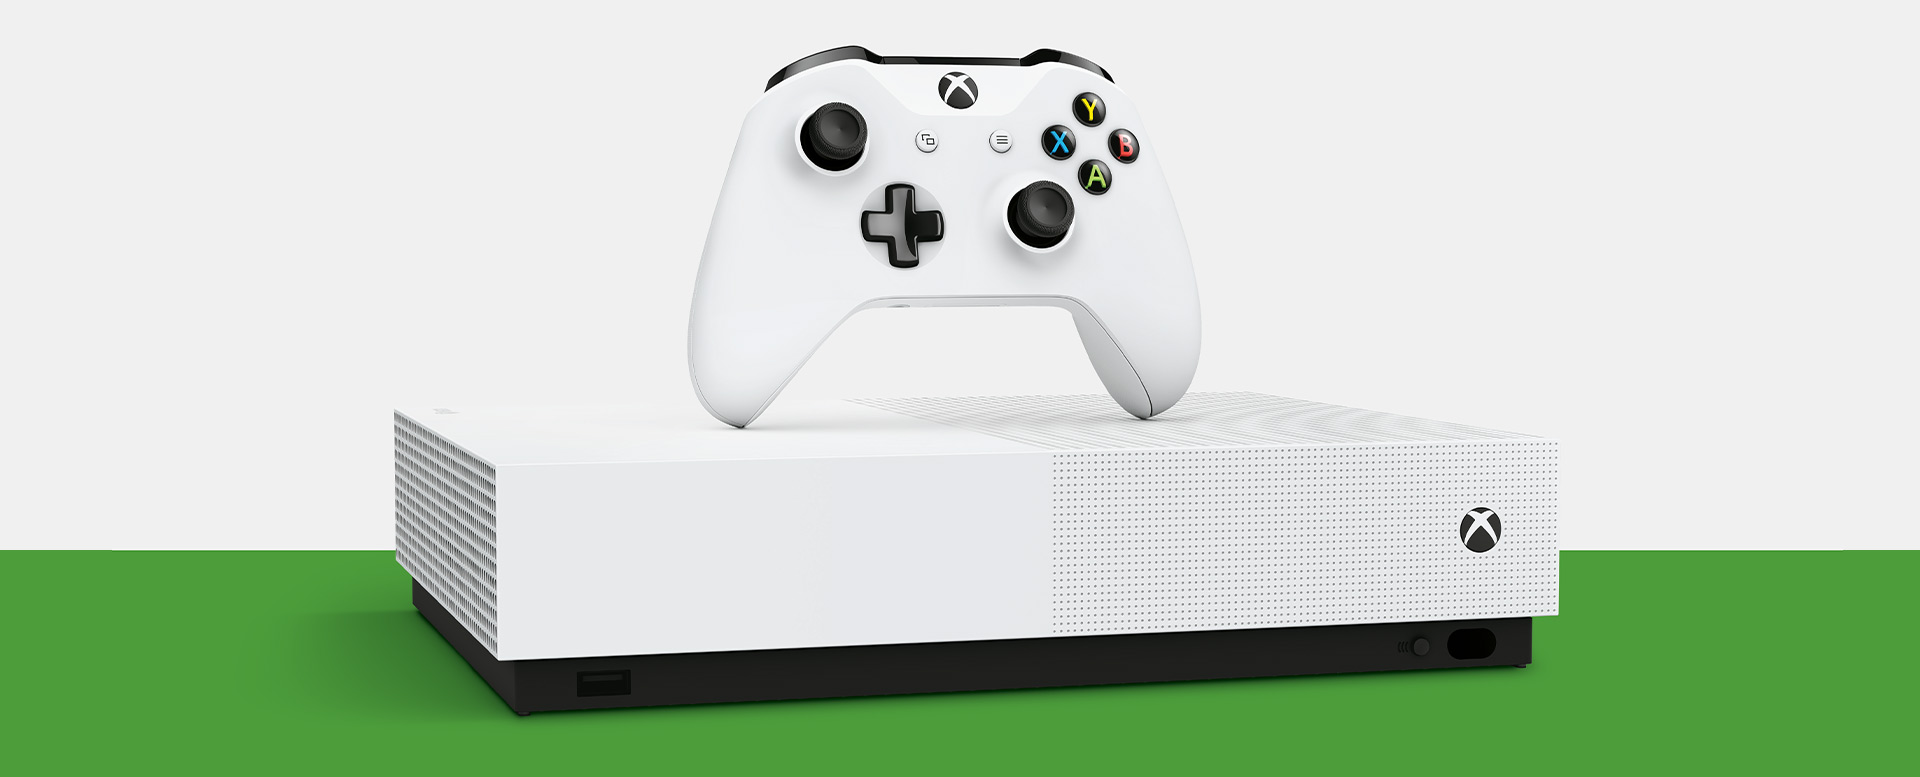 Xbox One S All-Digital Edition console in front of a hardware bundle box art